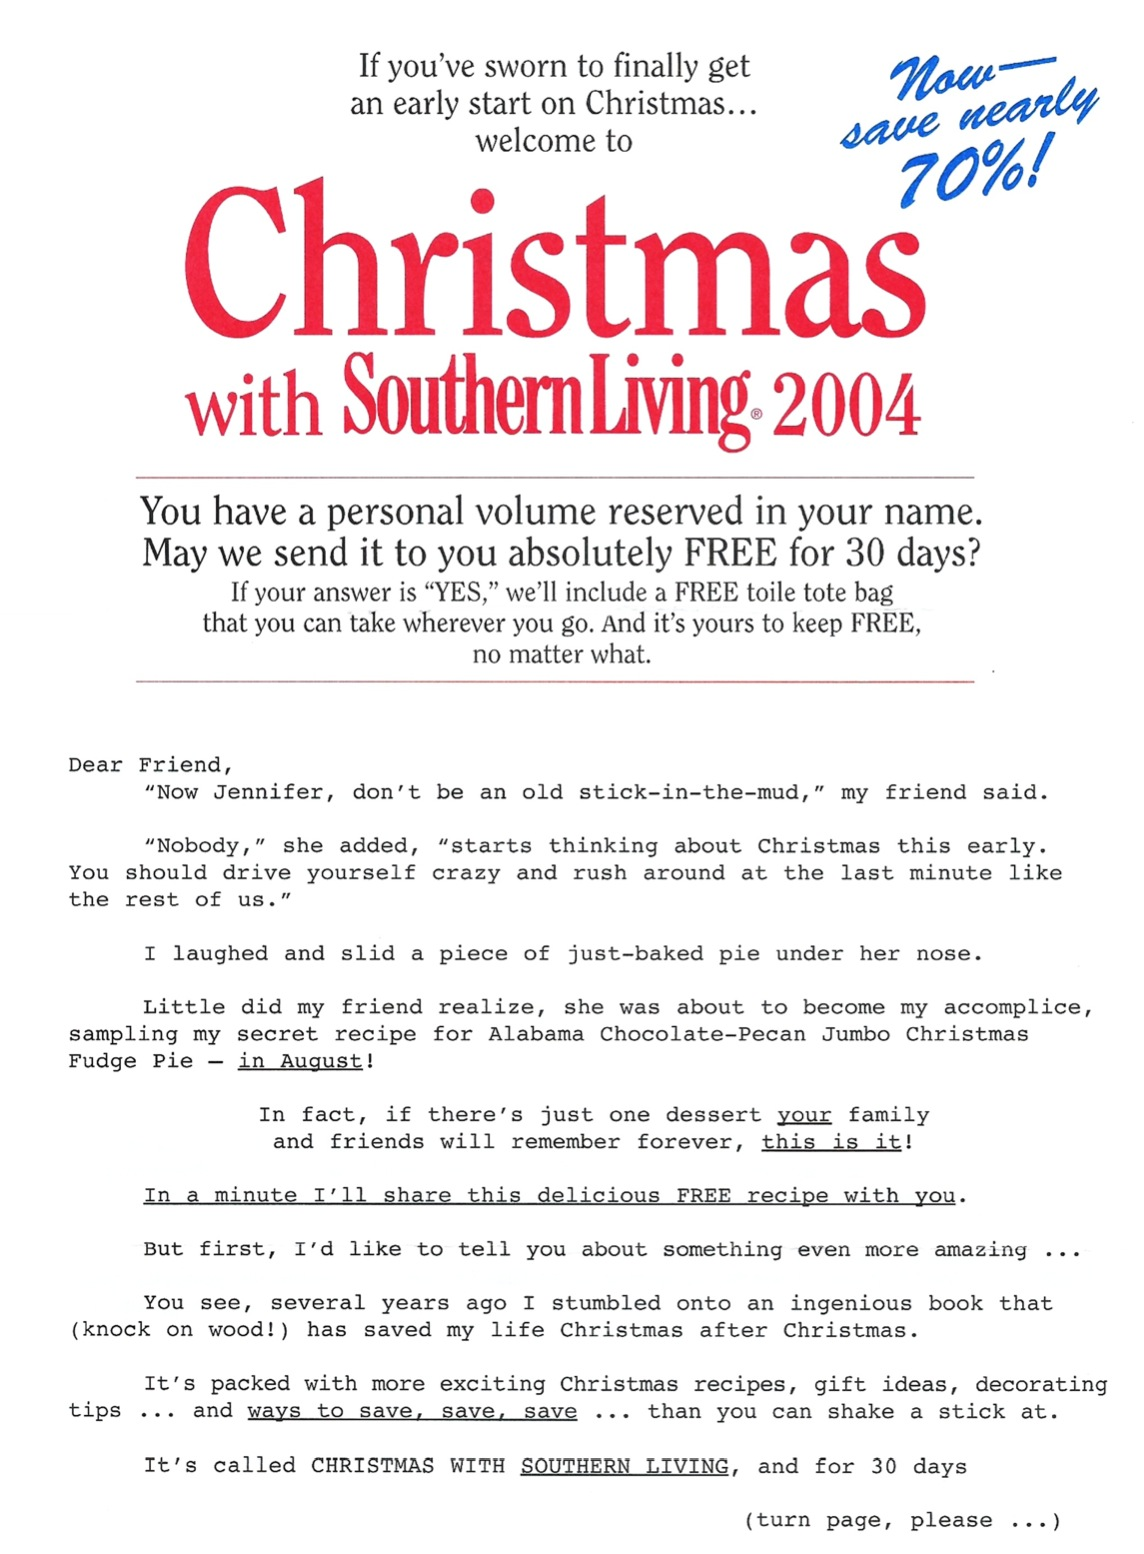 image of Christmas with Southern Living direct mail sales letter page 1